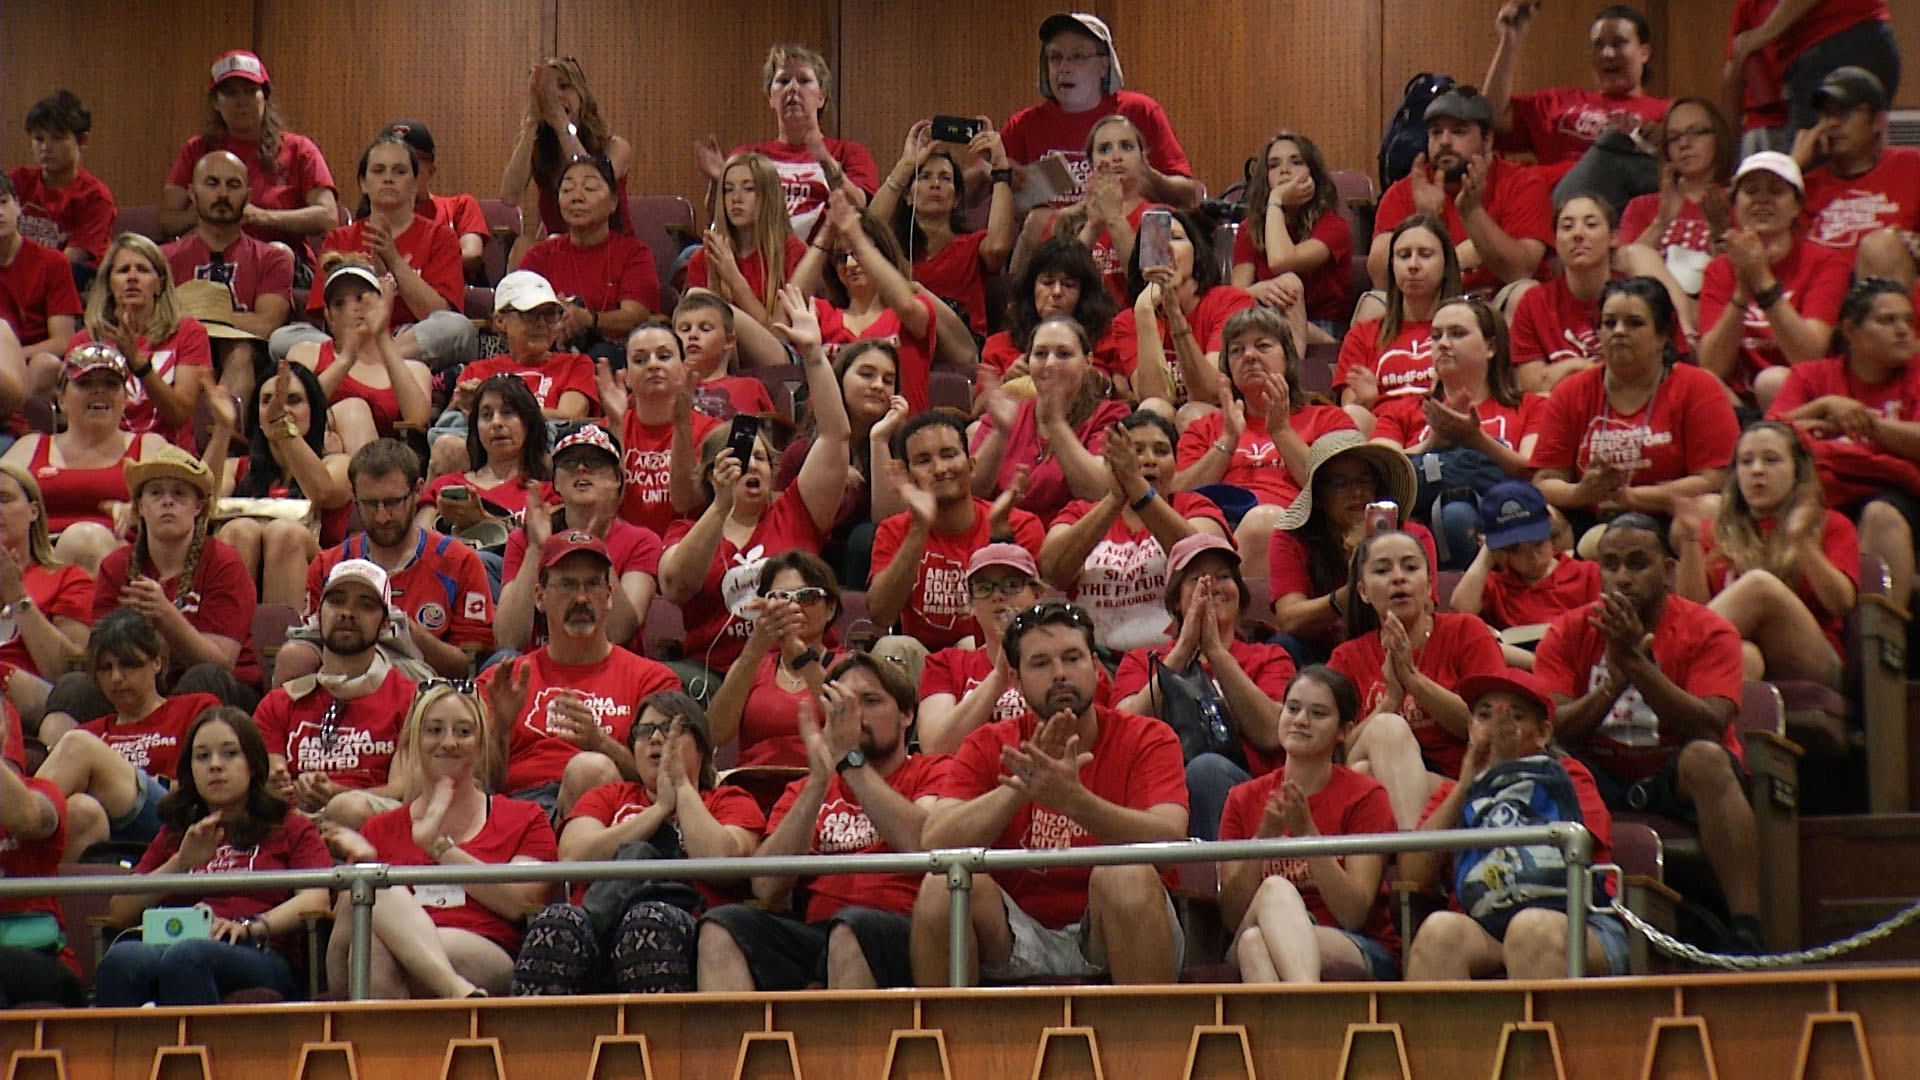 Red For Ed Supporters at Arizona's Capitol